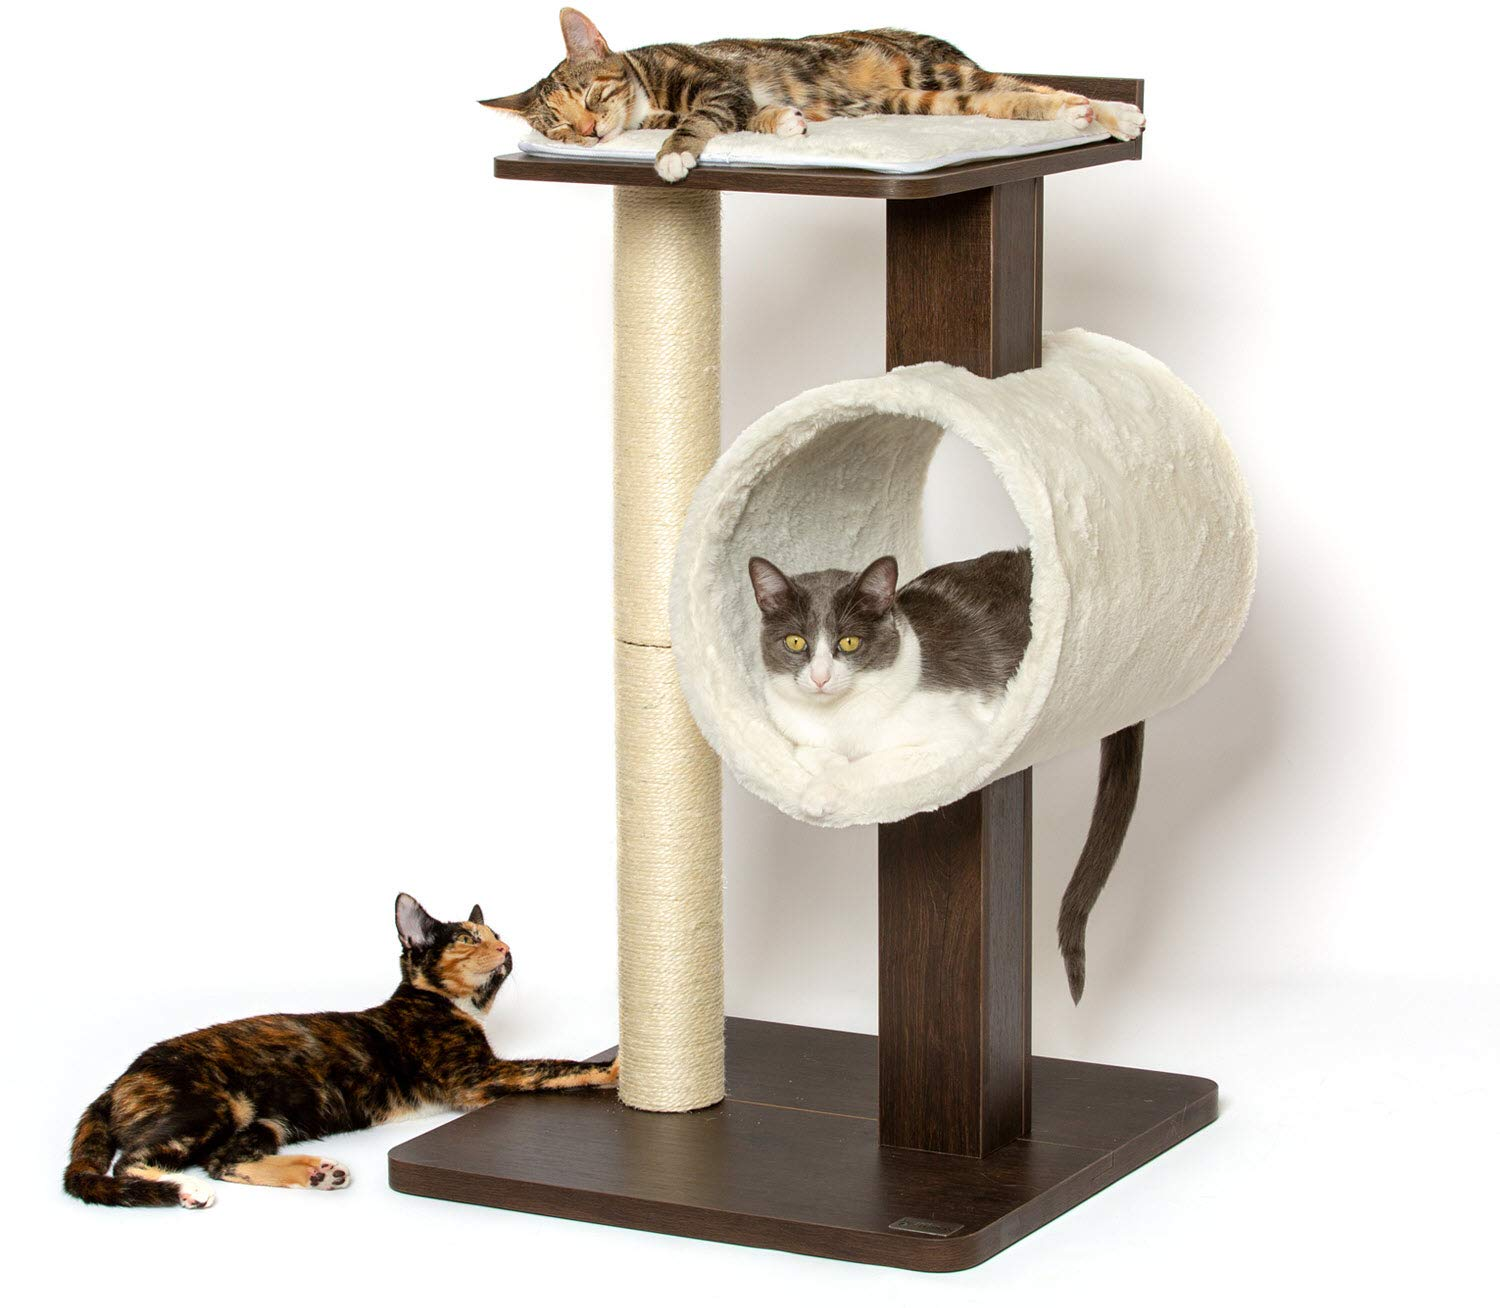 Petfusion modern cat tree house tall modern and neutral platforms espresso finish amazon ca pet supplies